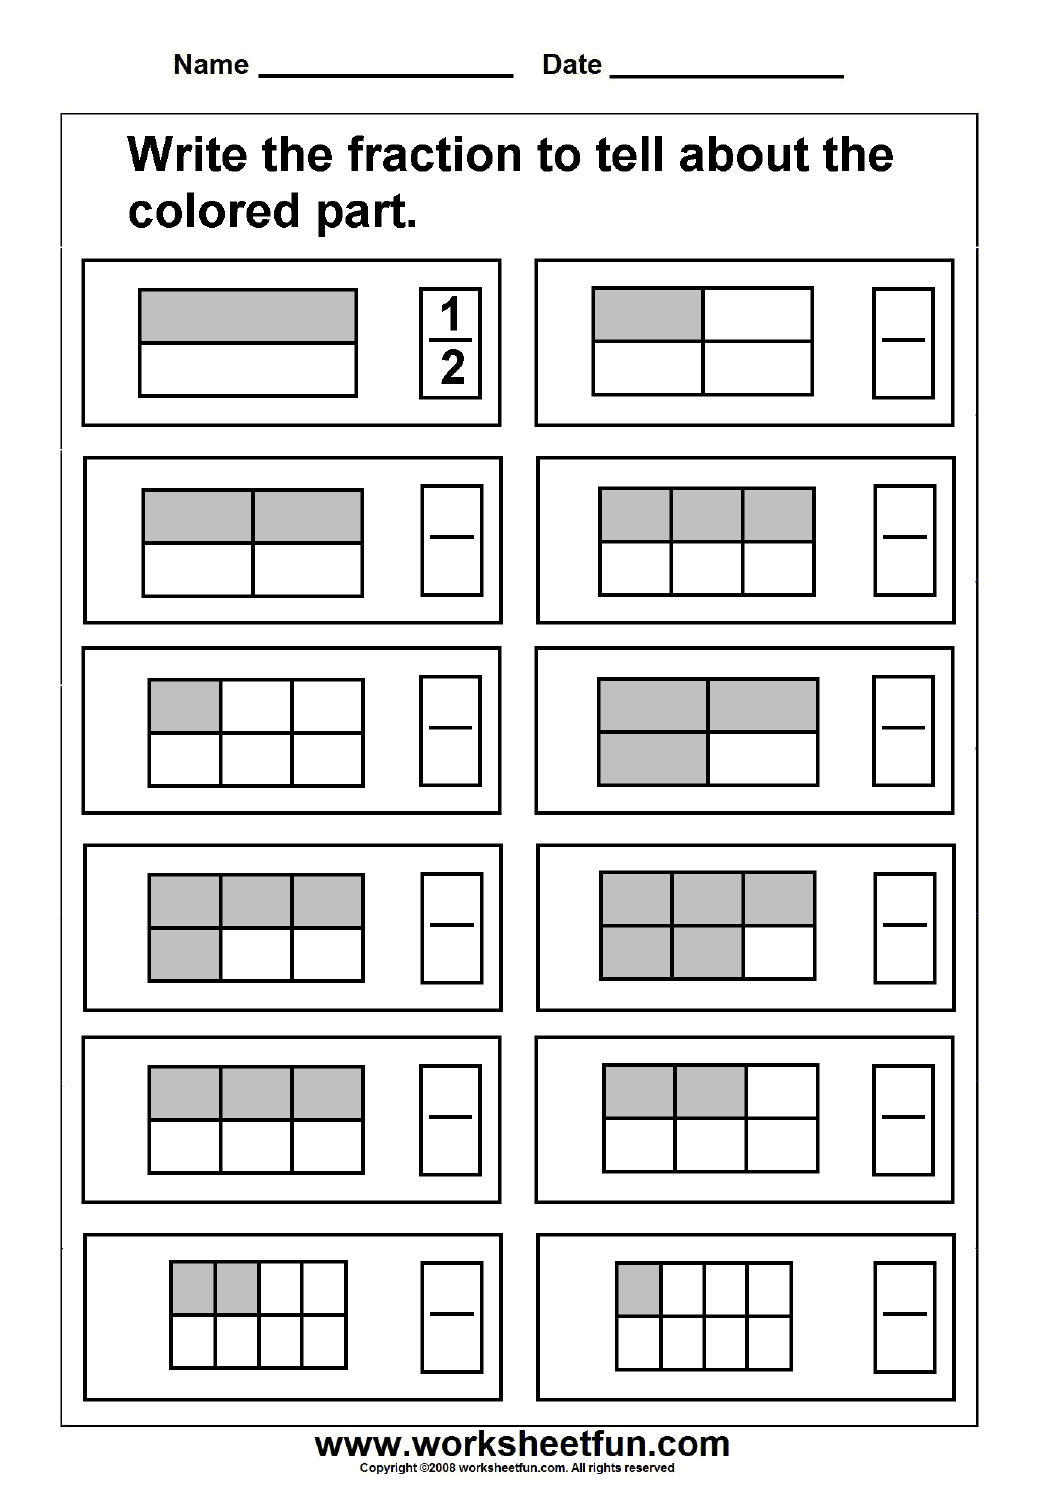 Fraction FREE Printable Worksheets Worksheetfun – Kindergarten Fractions Worksheets